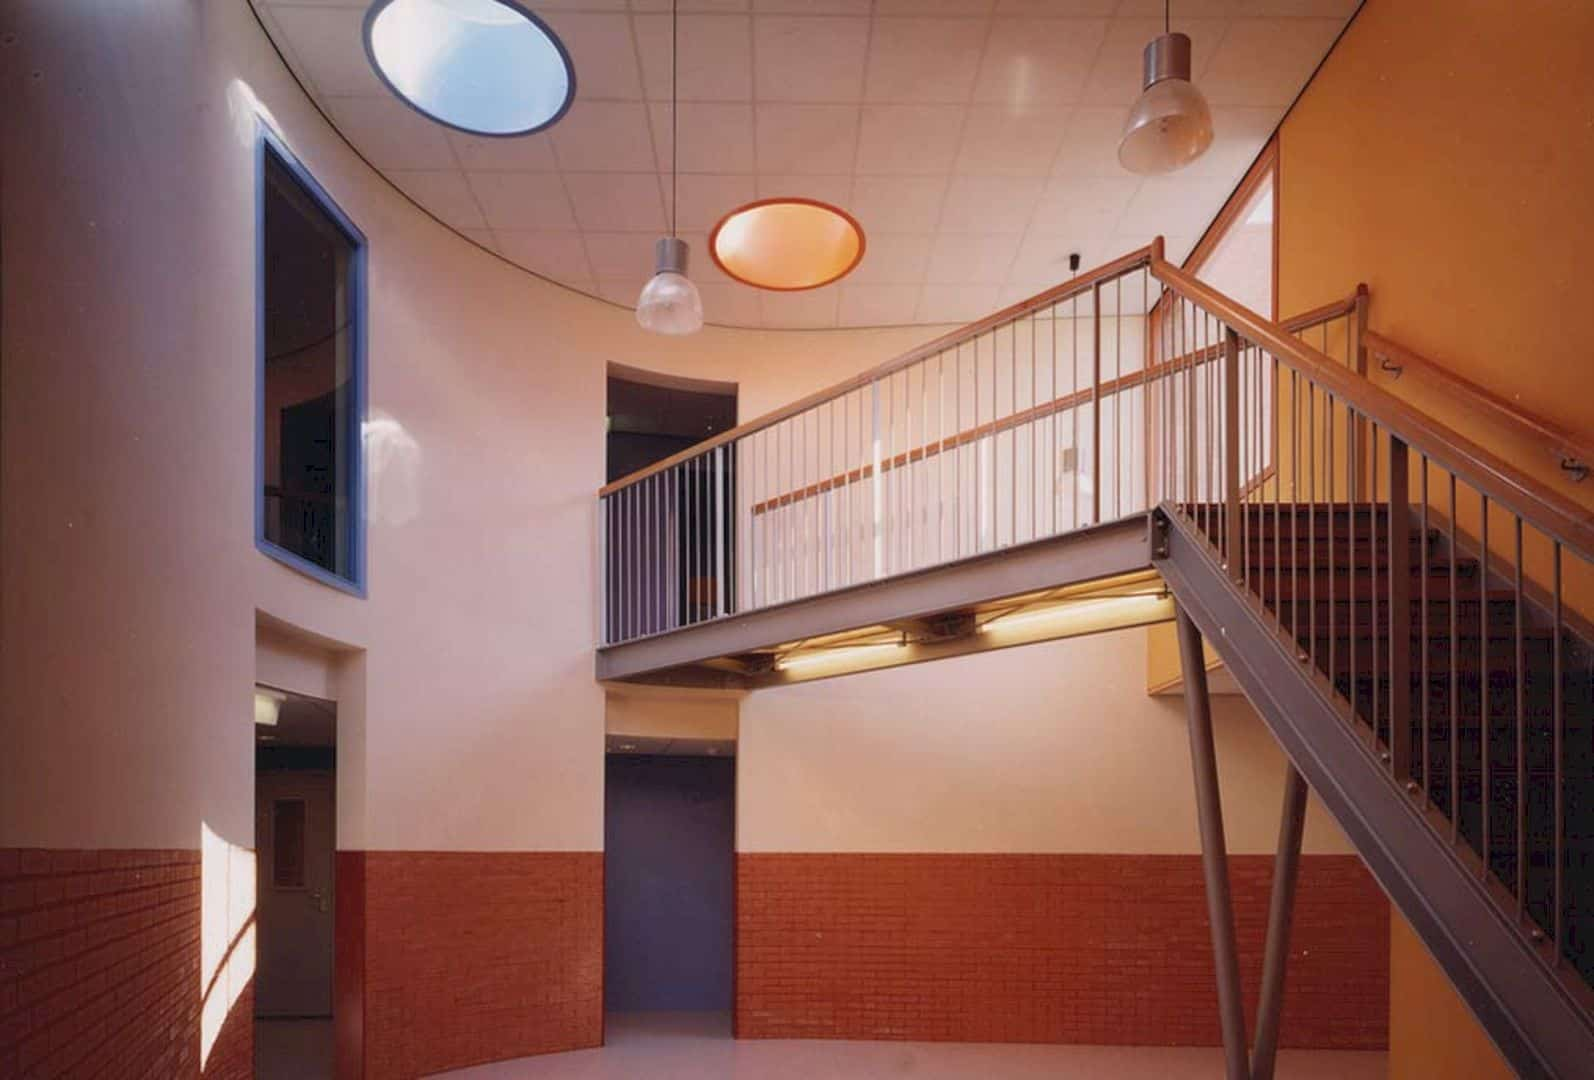 Community Centre & Day Care Delft By Jeanne Dekkers Architectuur 2